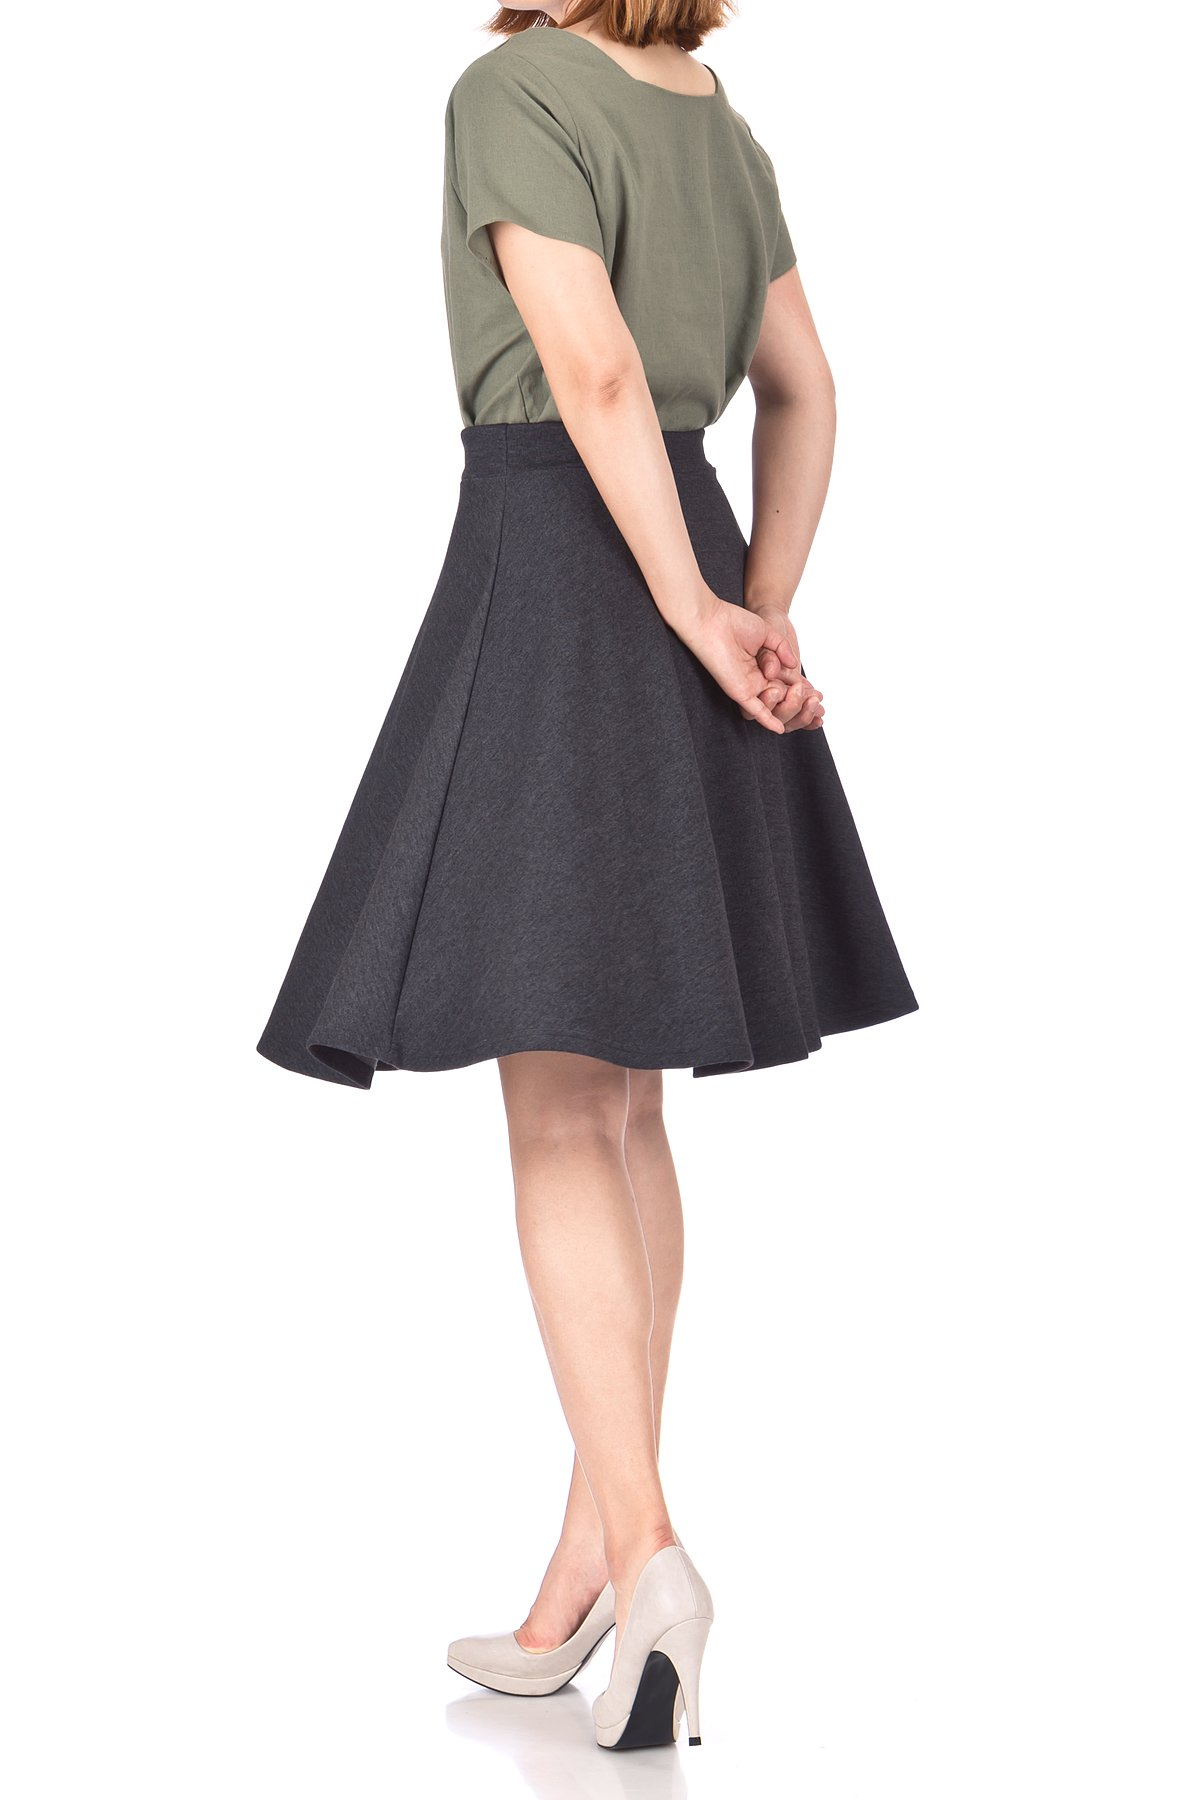 Comfy and Lovely Cotton Blend Versatile Casual Office High Waist A line Full Flared Swing Circle Skater Knee Length Skirt Charcoal 05